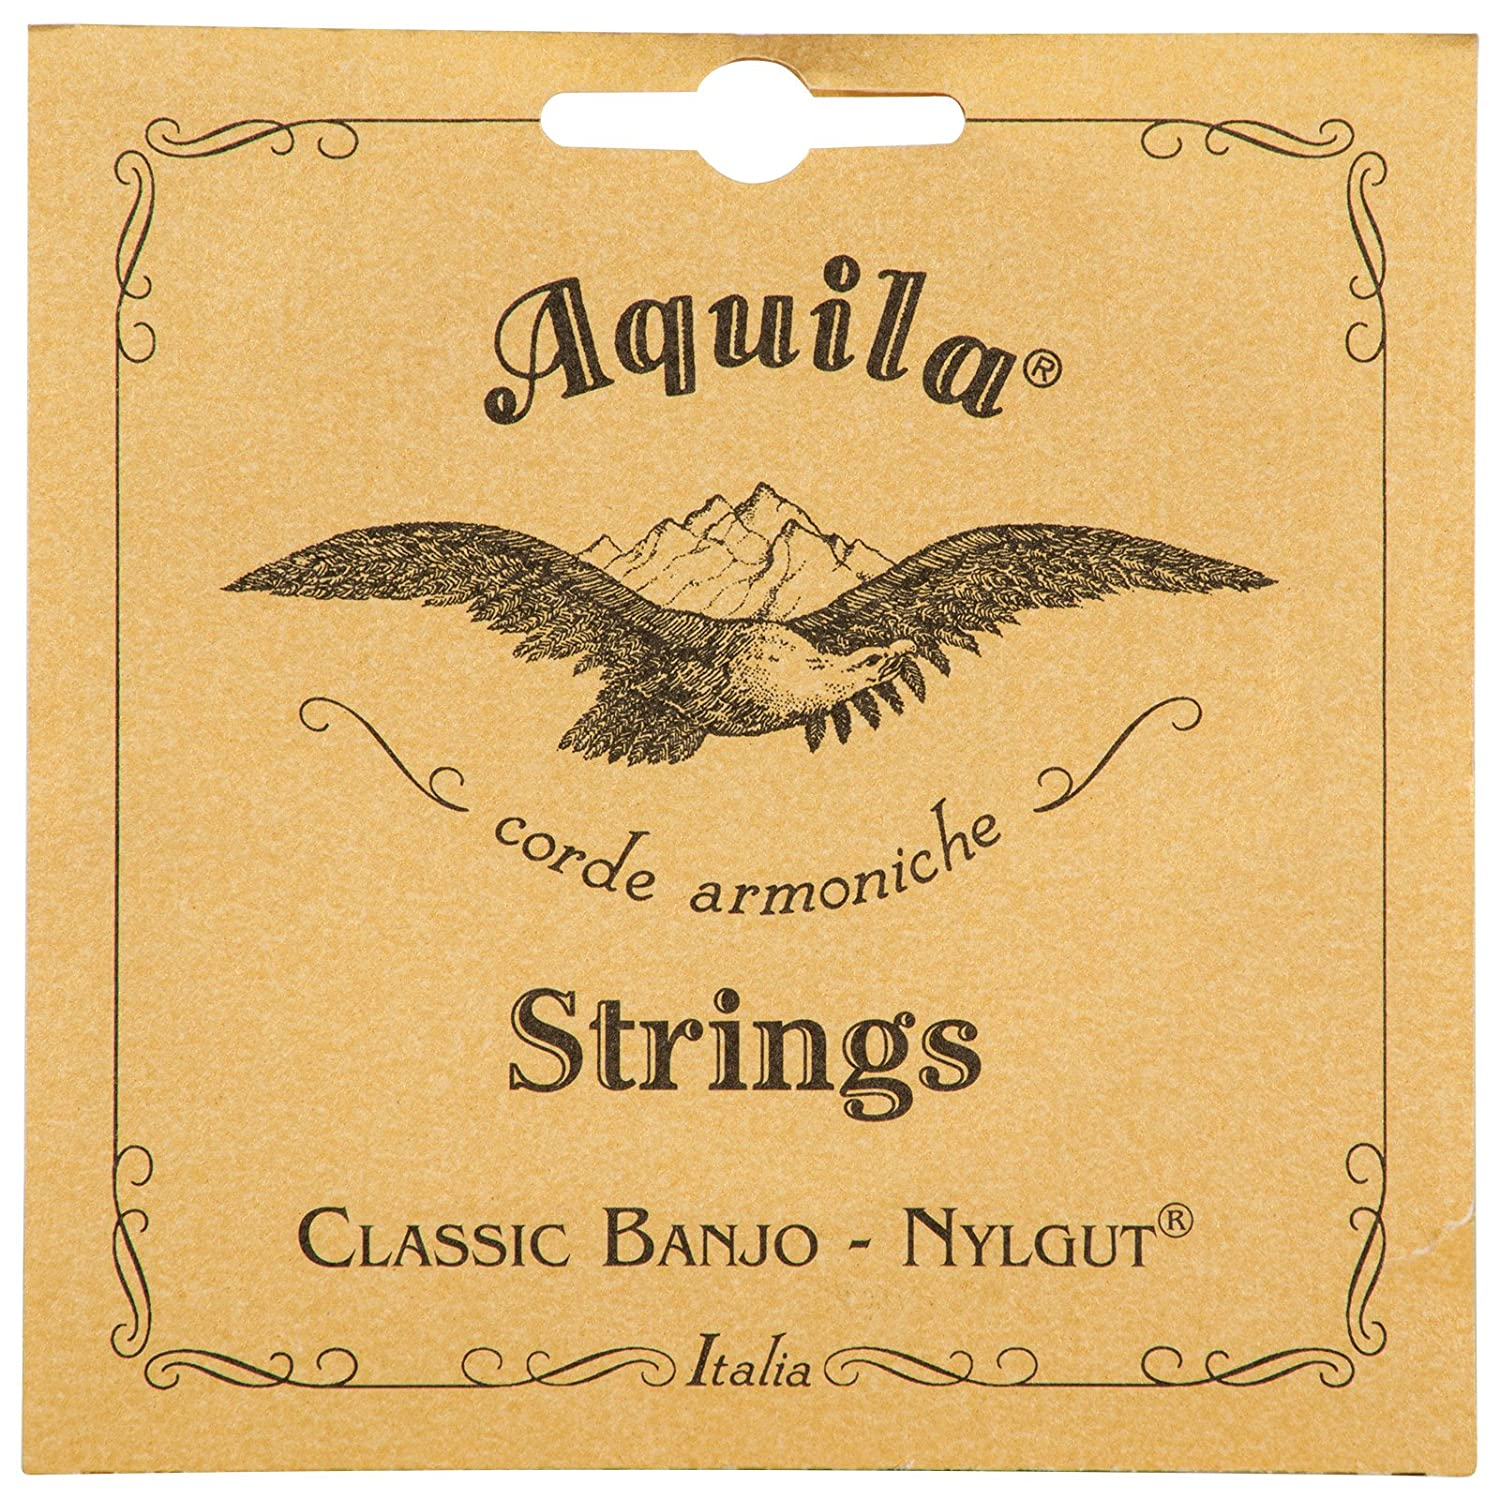 Aquila AQ-6B New Nylgut Banjo Strings Medium Tension DBGDG Set of 5 Saga Musical Instruments CA